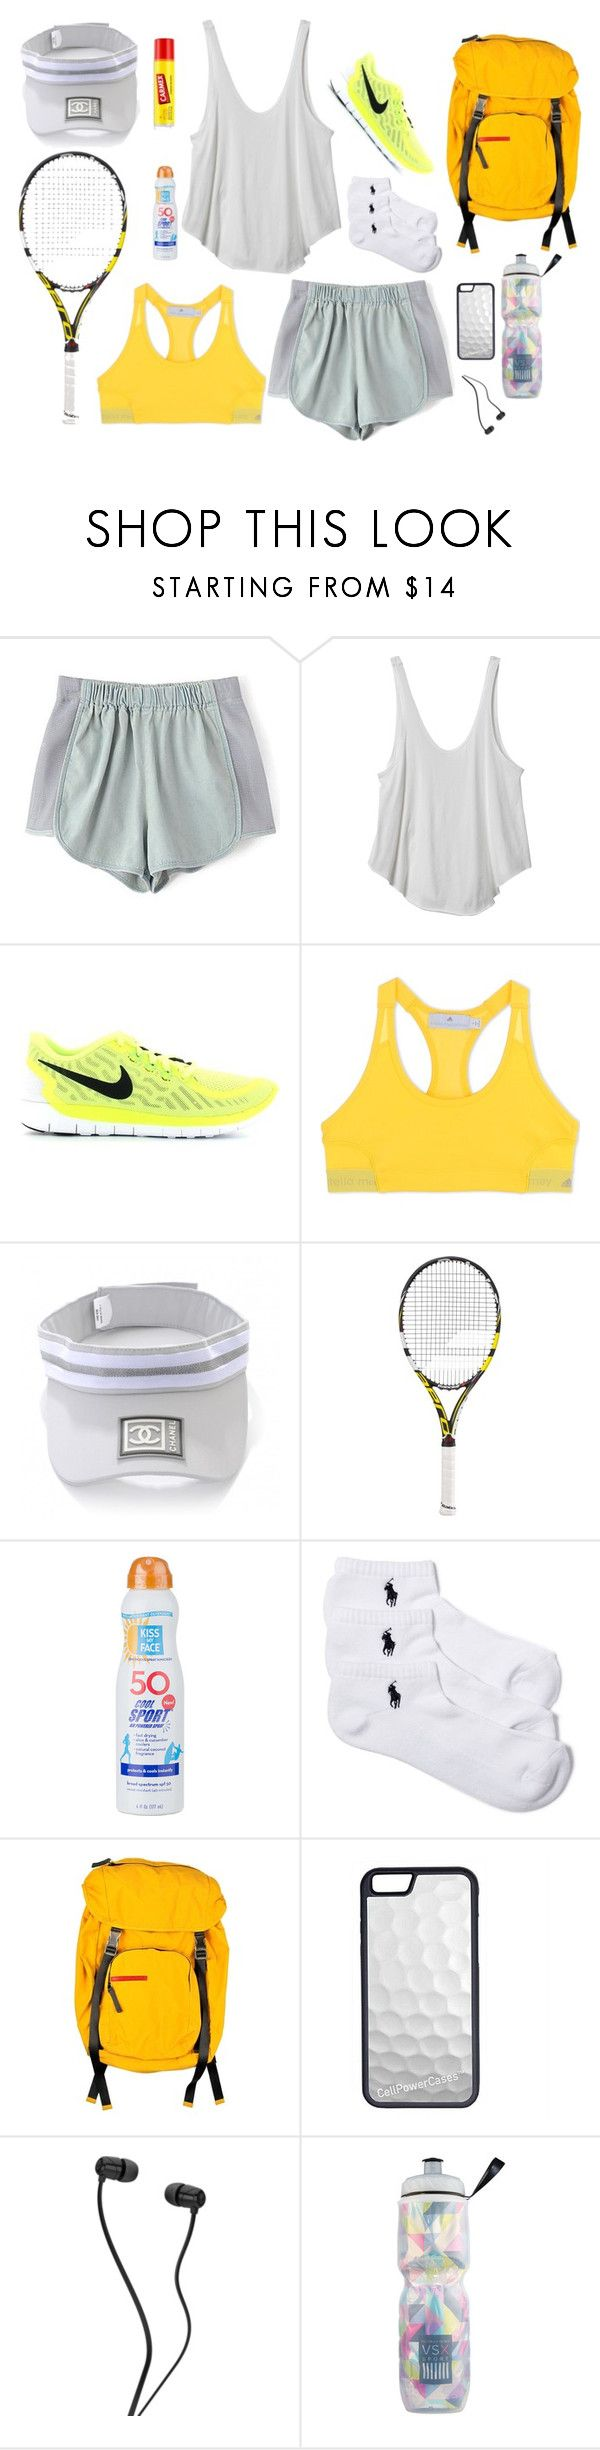 Sunday Sporty by dinyvia on Polyvore featuring RVCA, adidas, Polo Ralph Lauren, NIKE, Chanel, CellPowerCases, Babolat, Kiss My Face, Victoria's Secret and Prada